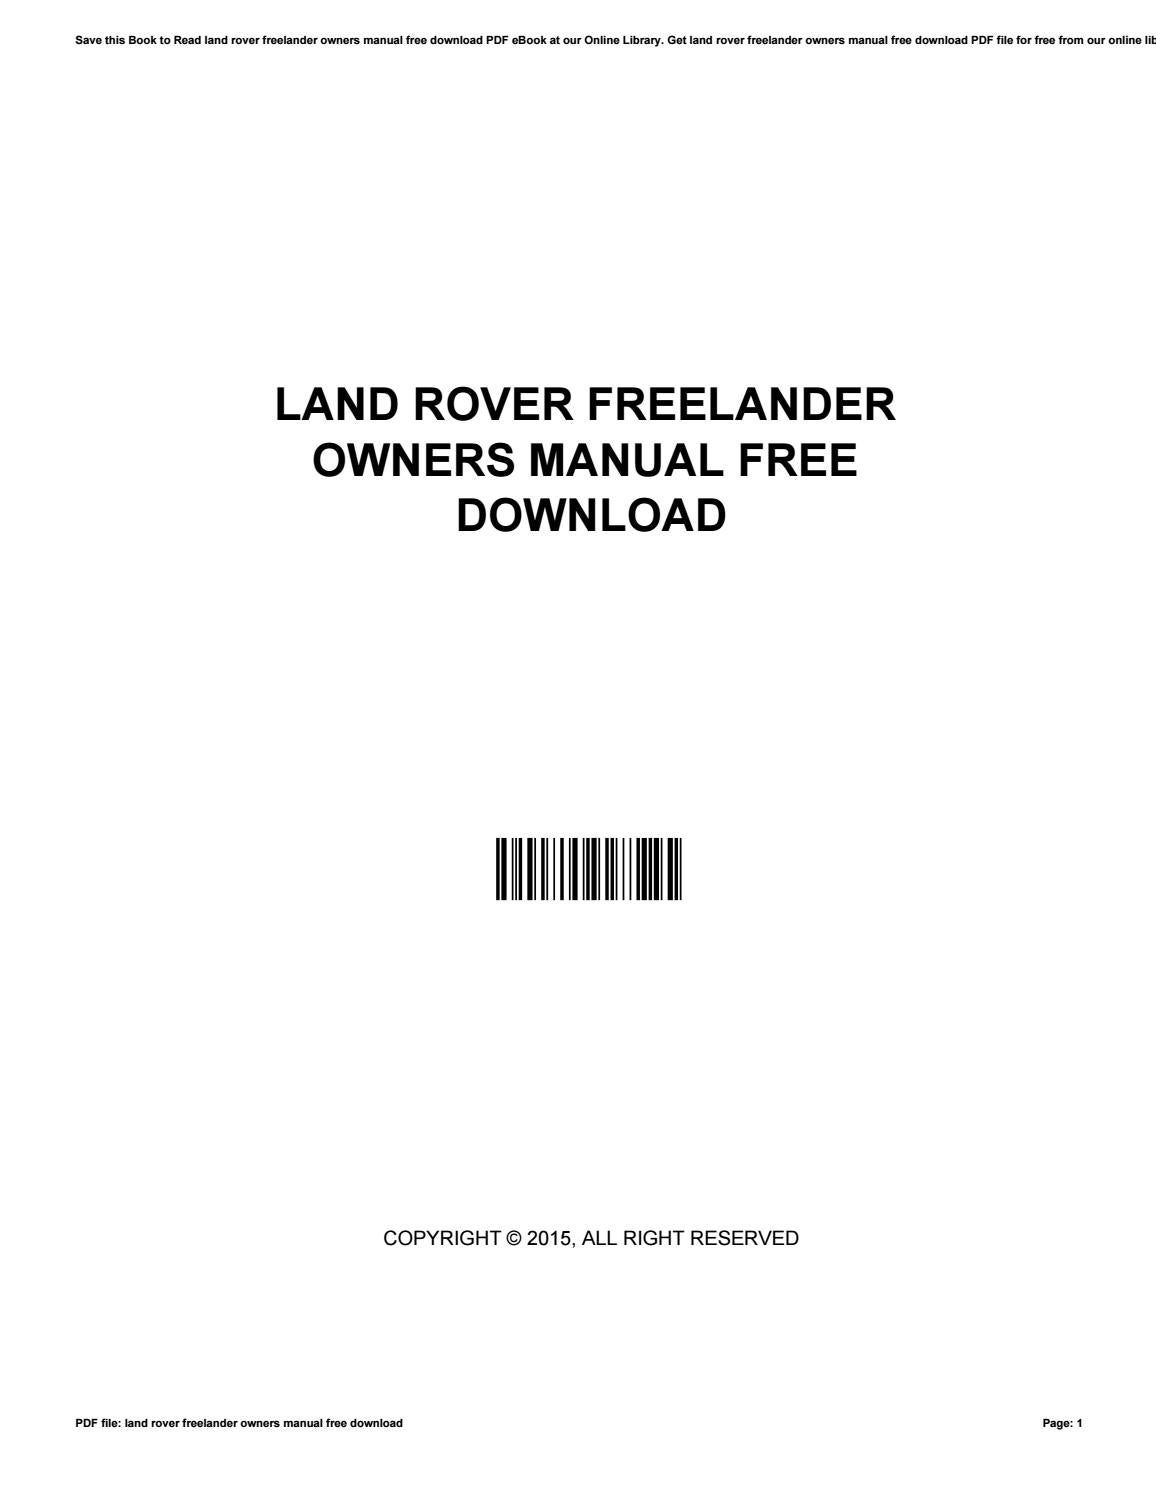 land Array - land rover freelander owners manual free download by o085  issuu rh issuu ...